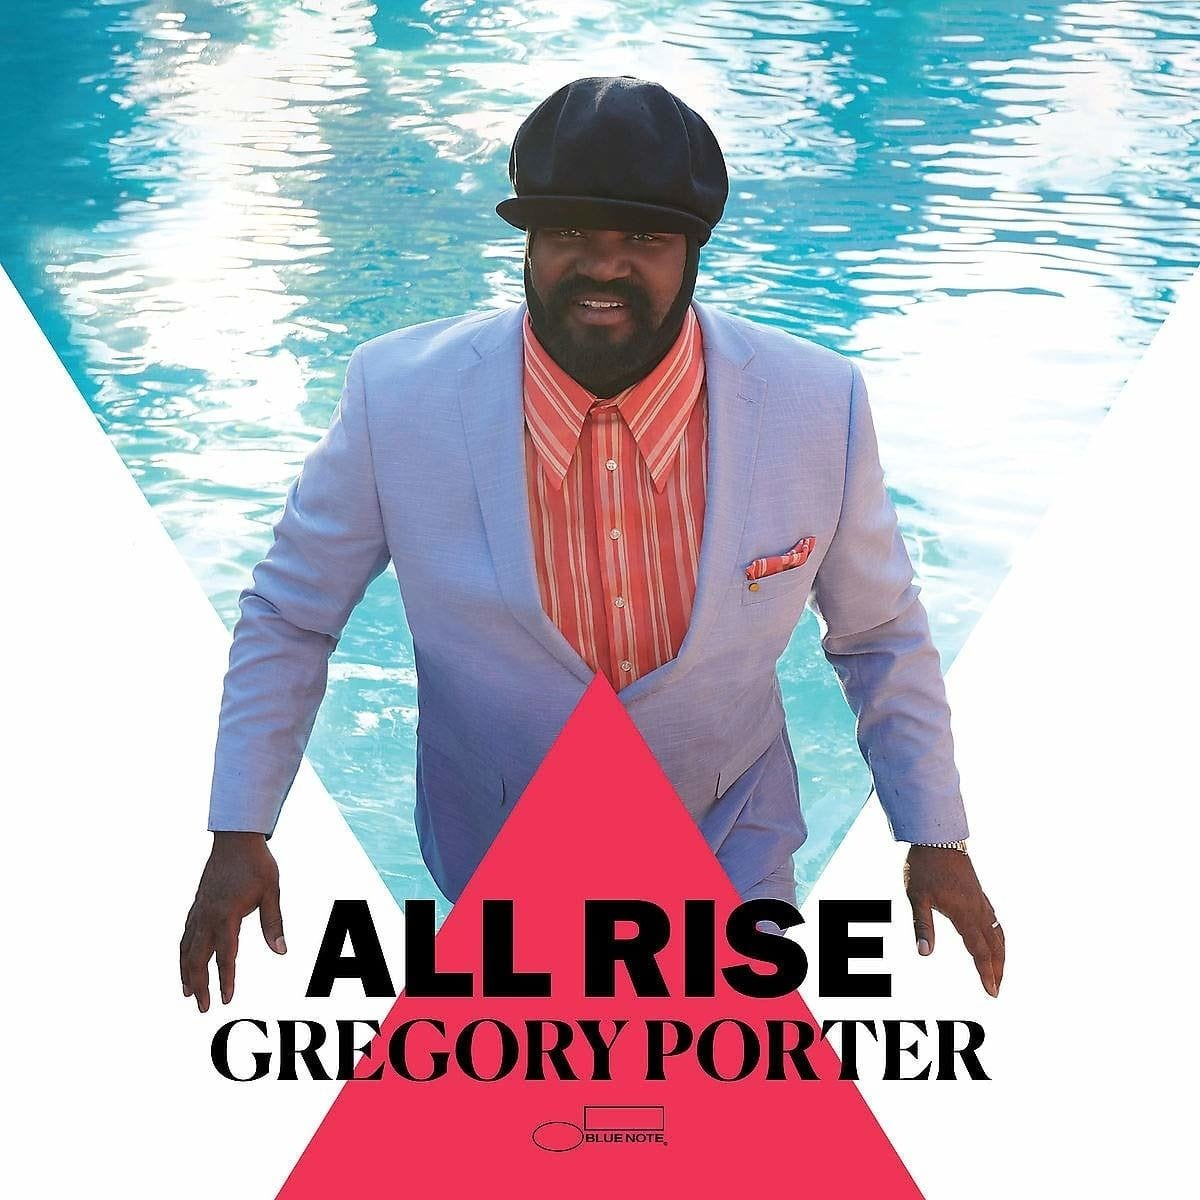 Gregory Porter Creates Another Collection of Soul-Jazz Gems on 'All Rise'